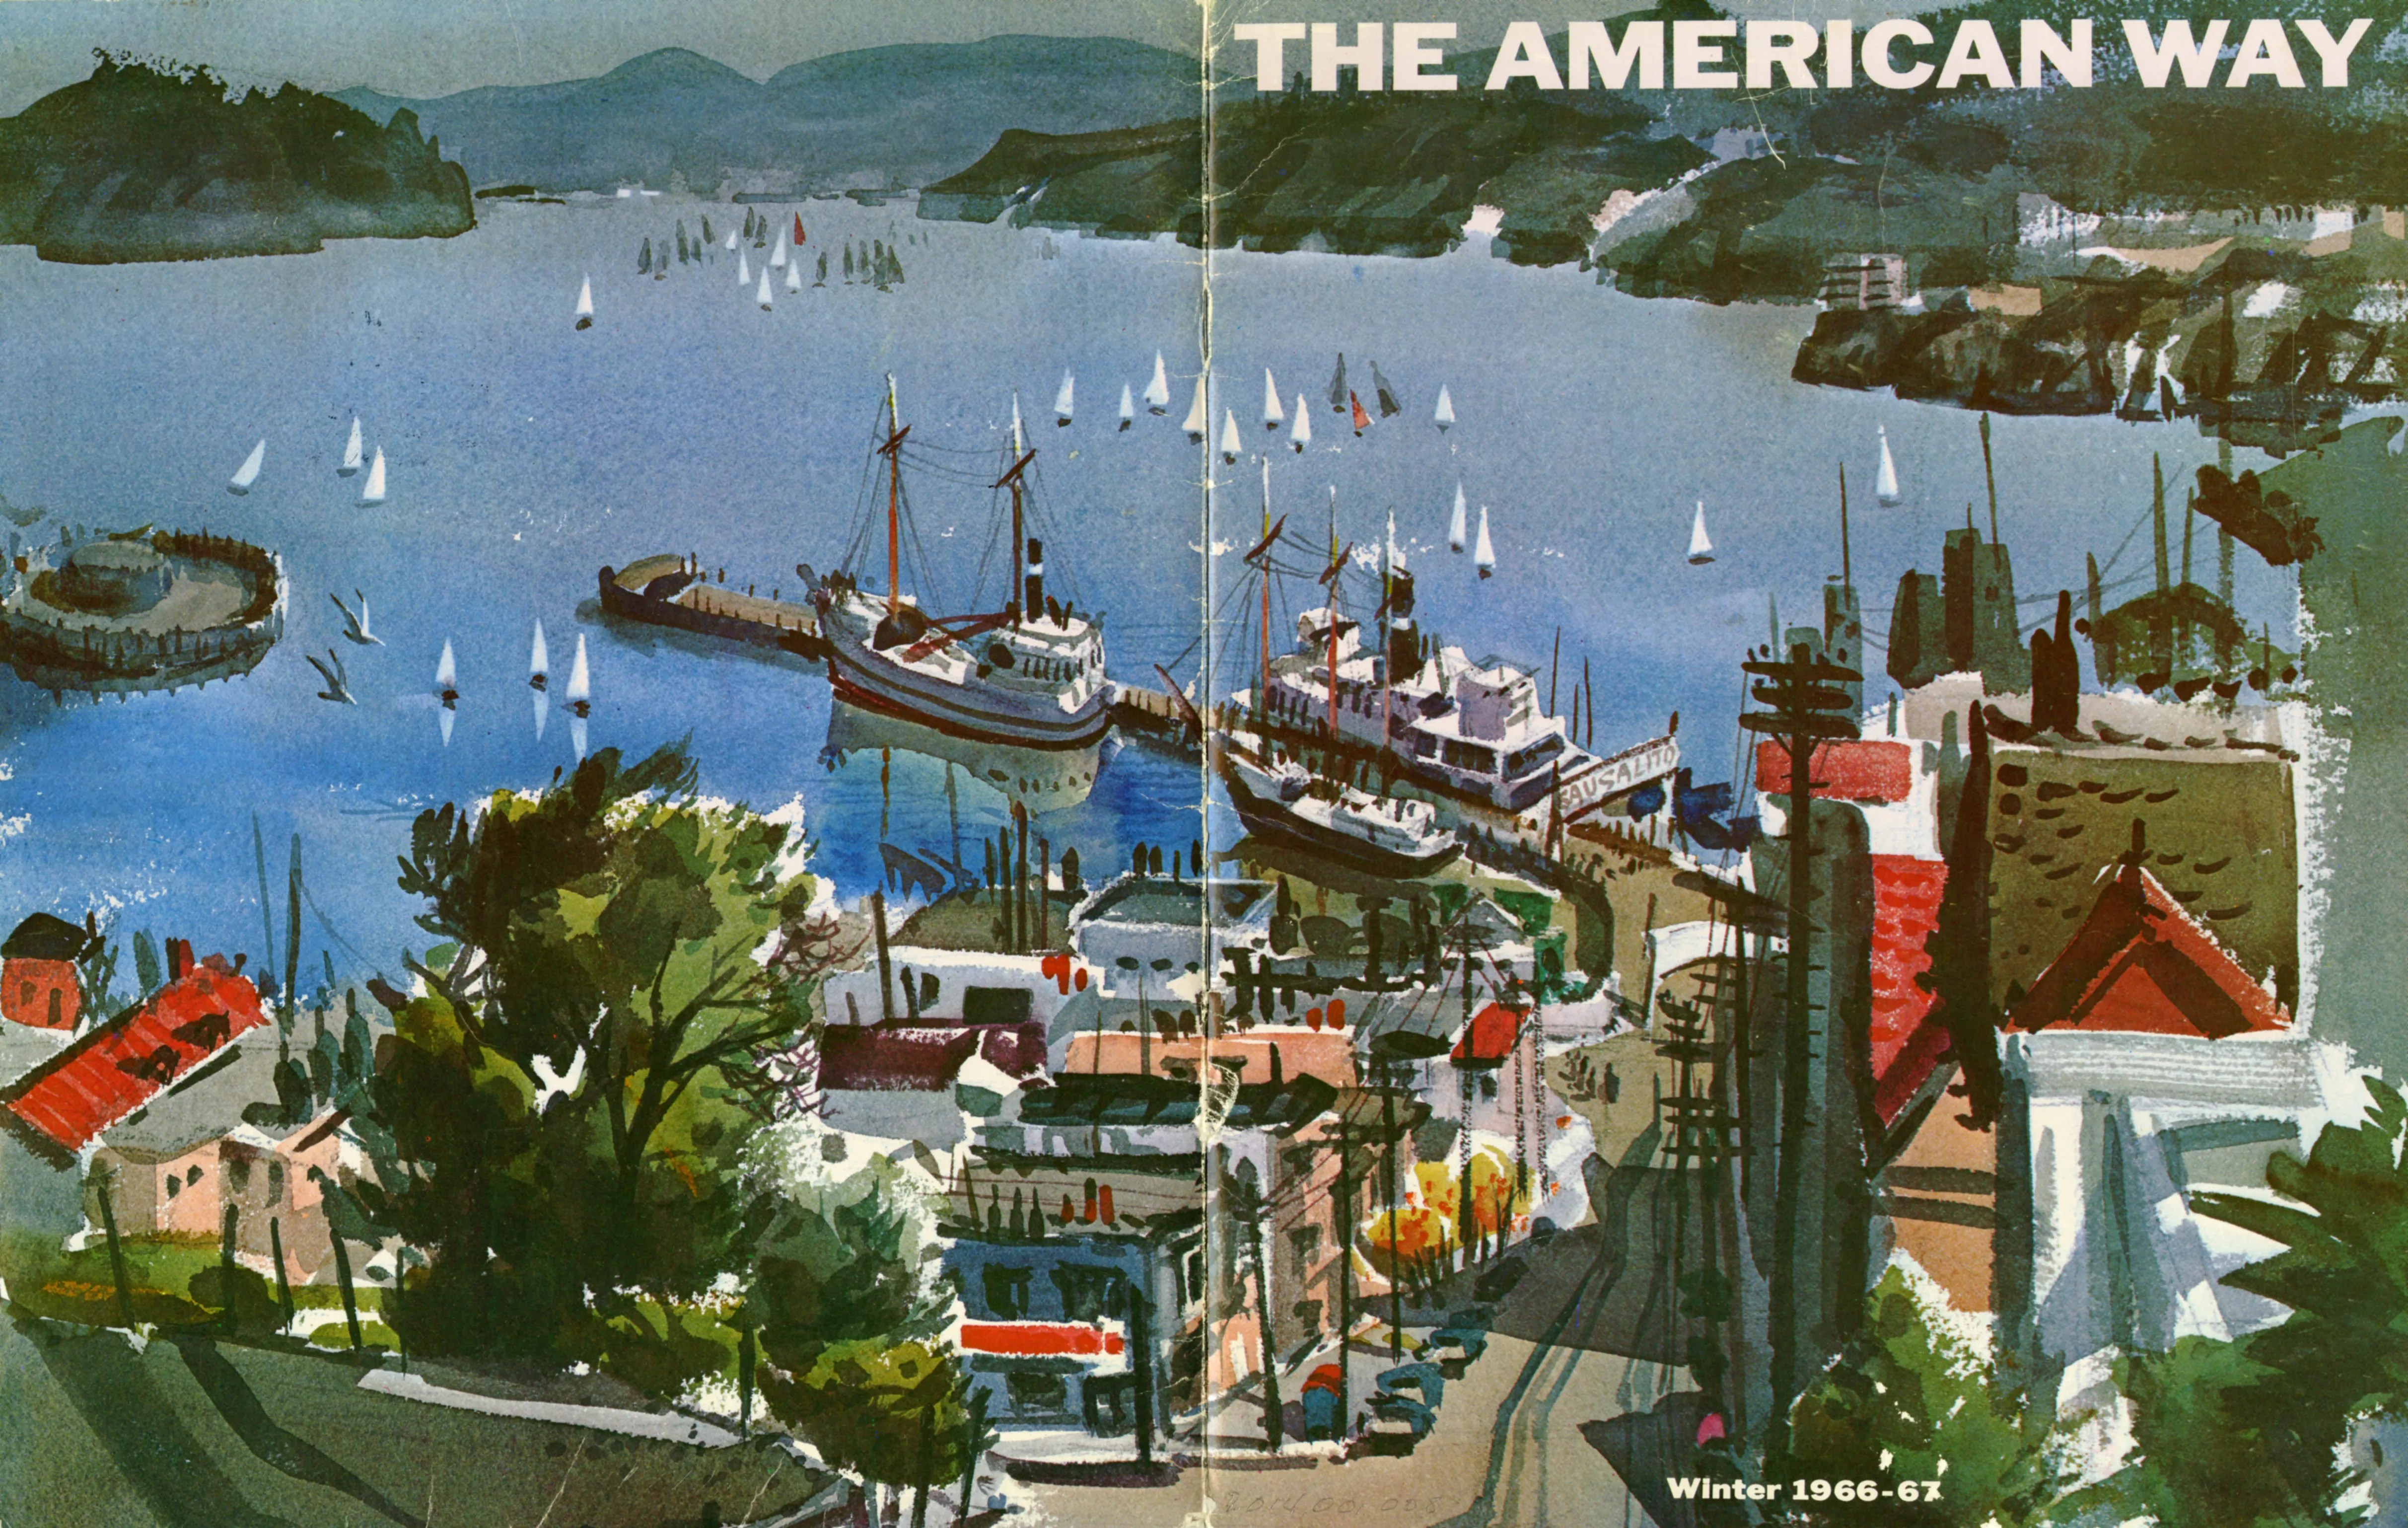 American Airlines launched its in-flight magazine, The American Way, in 1966.